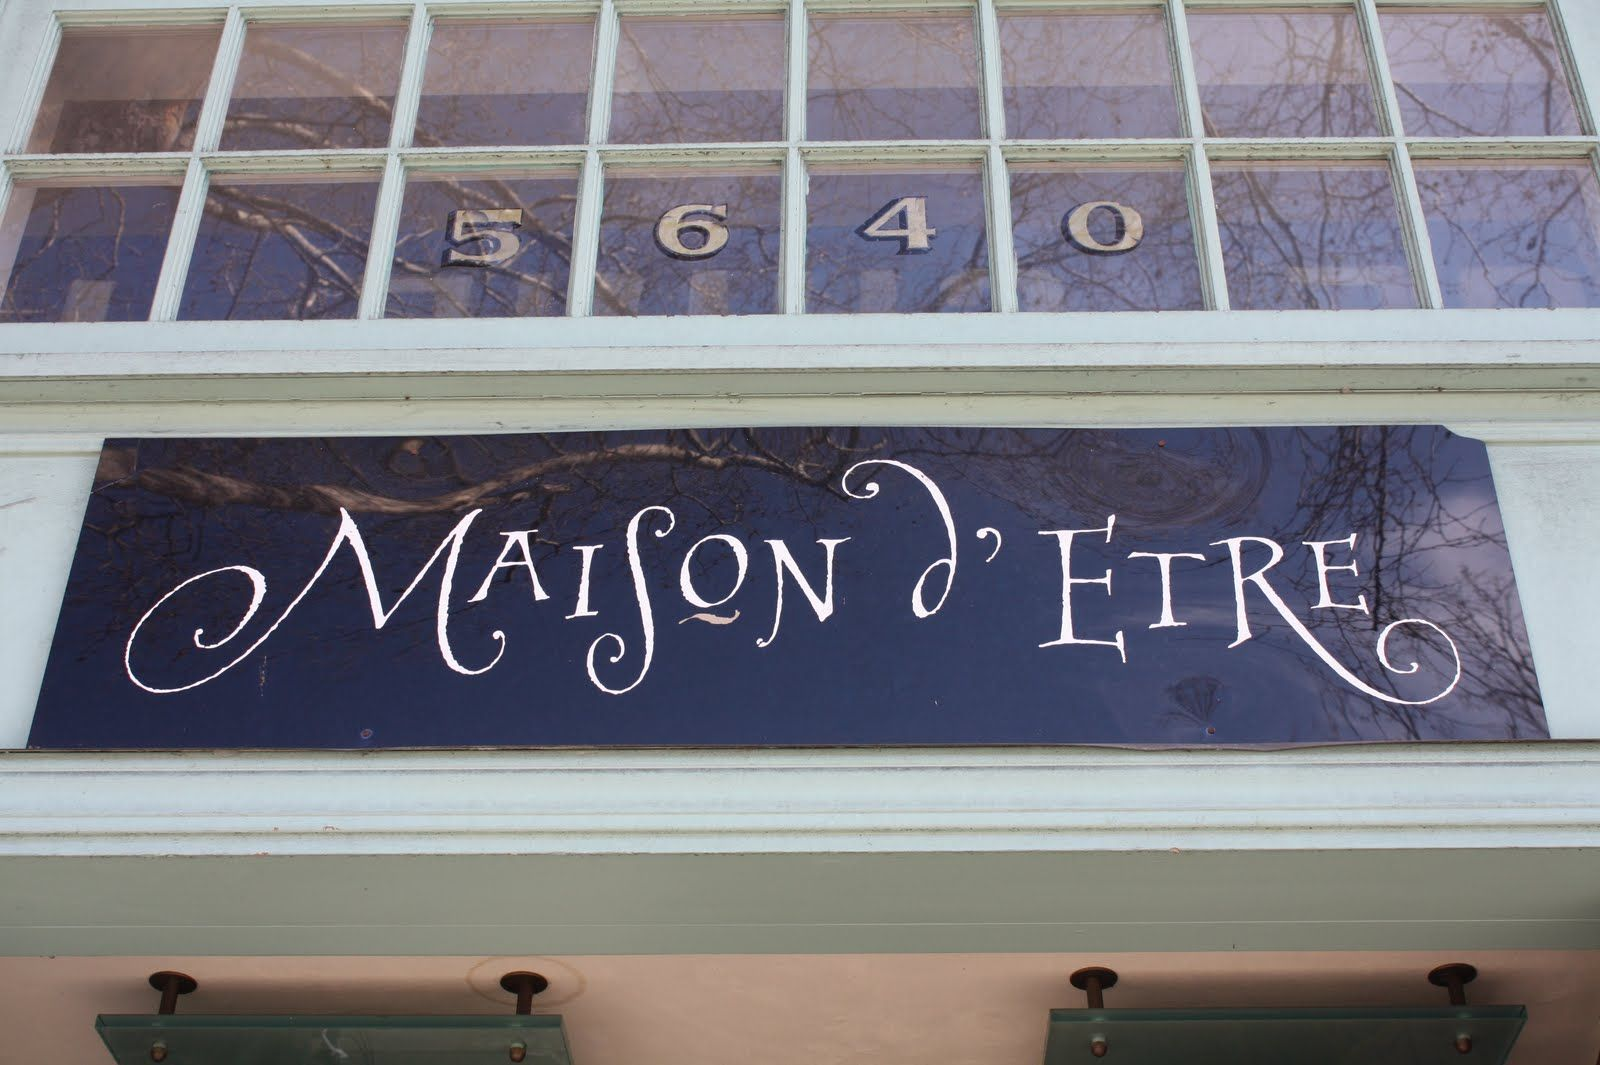 French is my 3rd language the maison d 39 etre means the for Maison etre